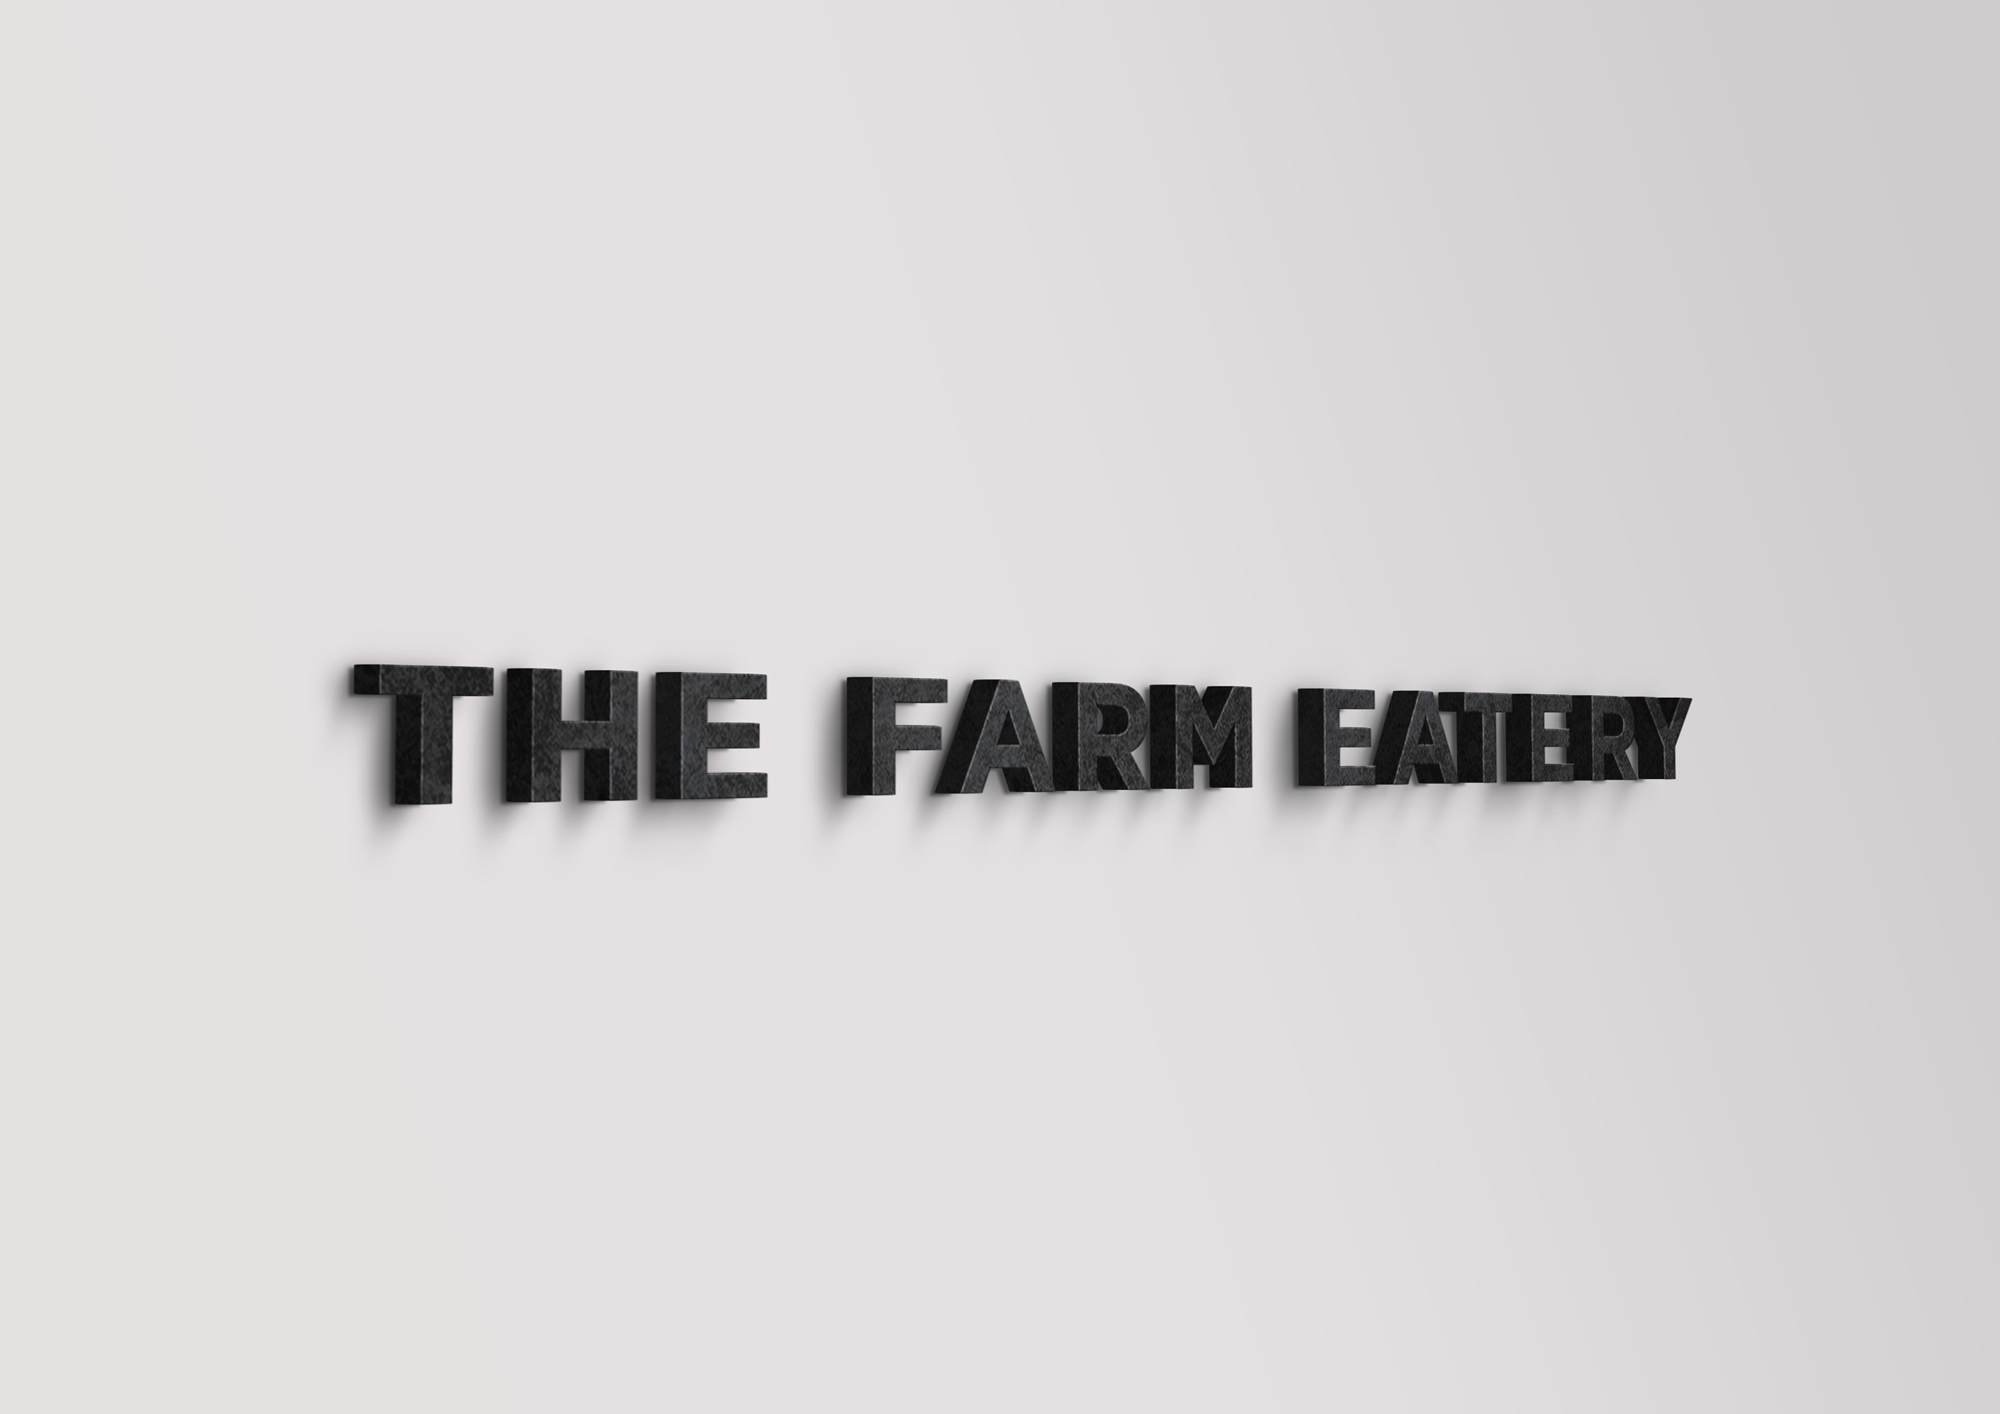 The Farm Eatery Entrance Signage